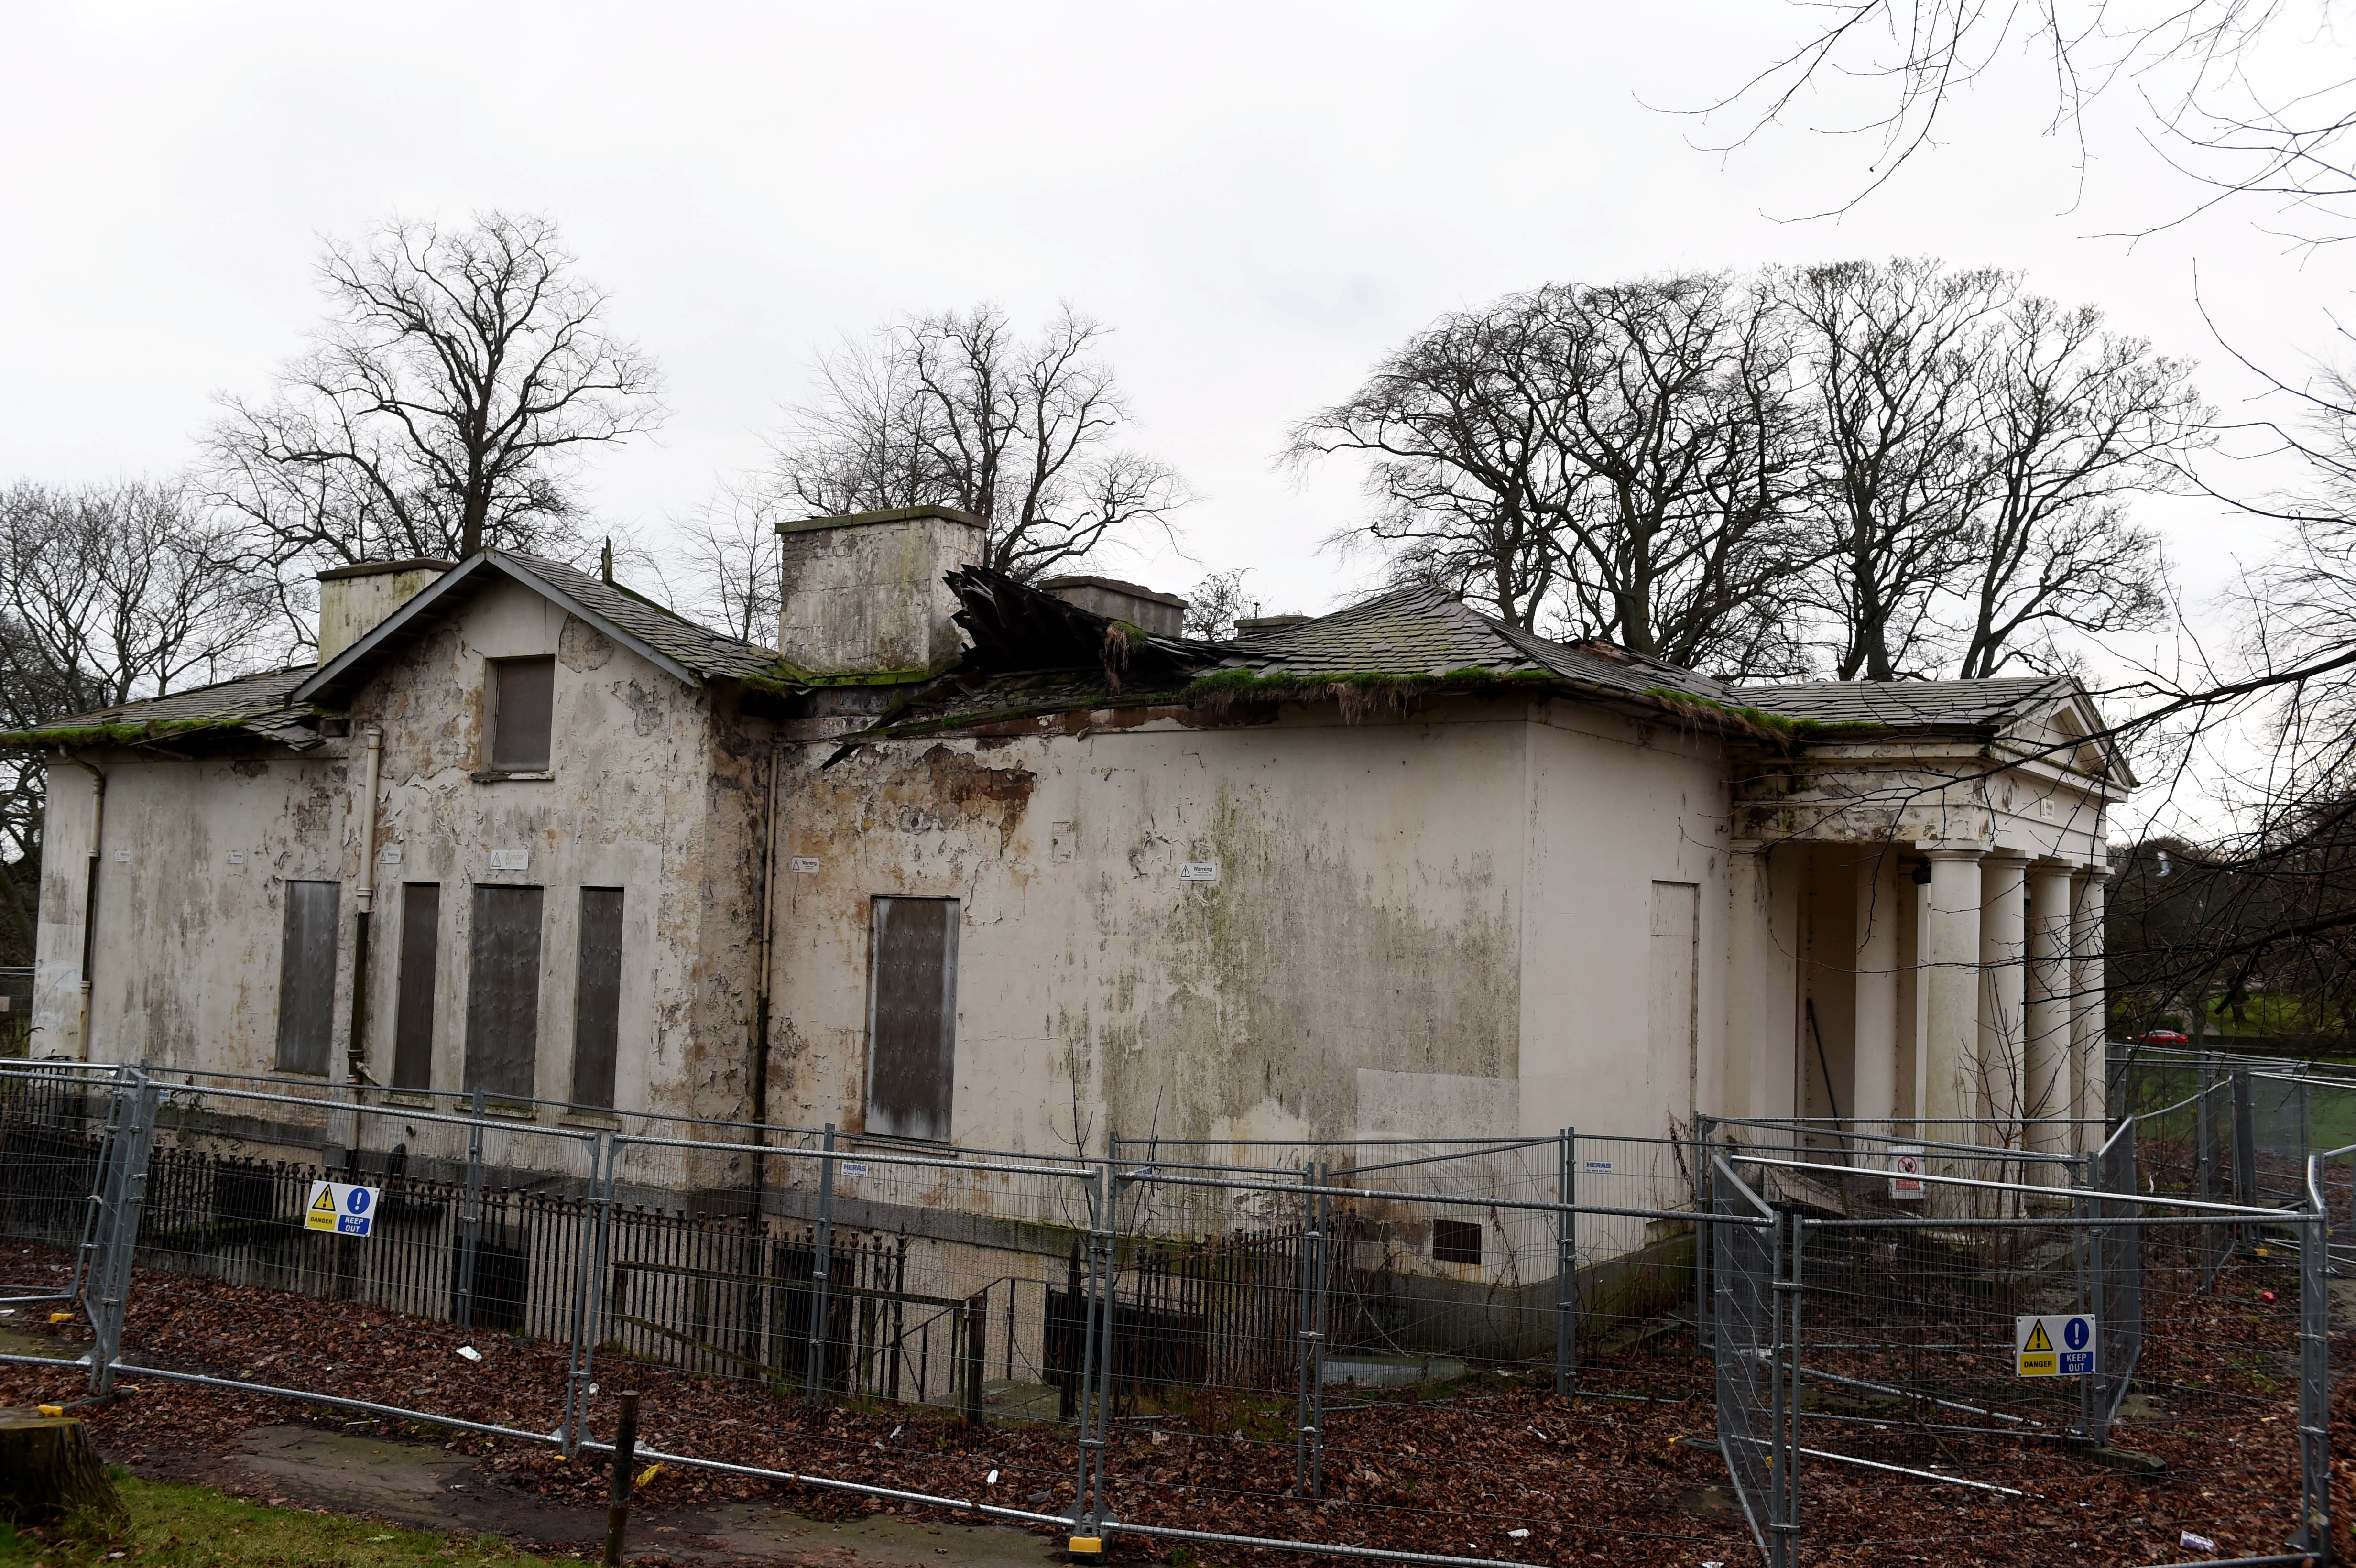 Westburn House has been on the Building's at Risk register for more than a decade